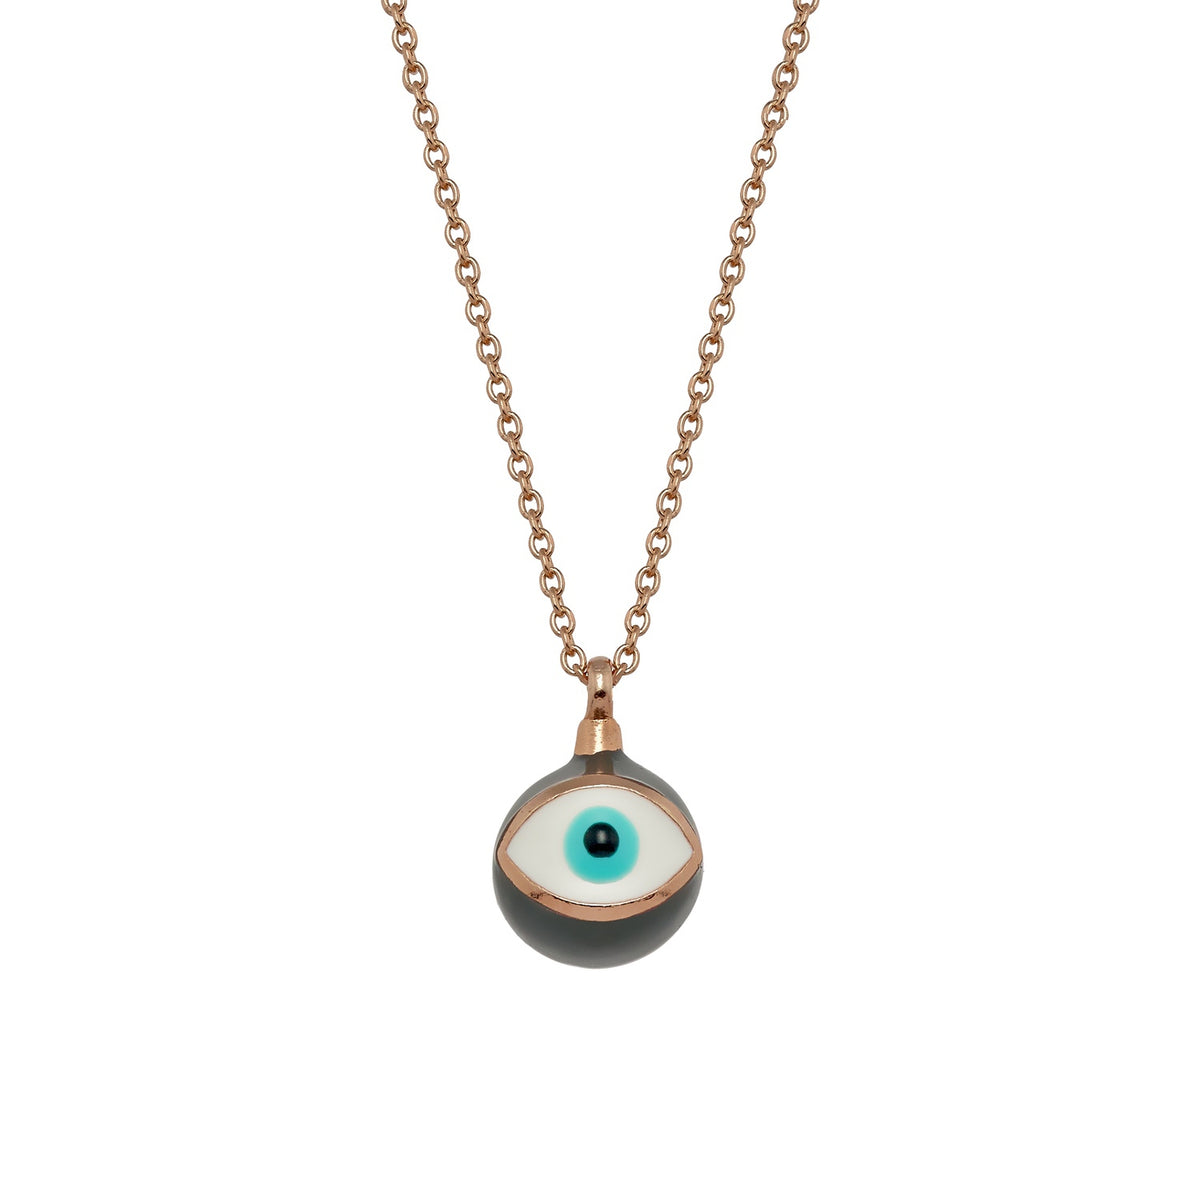 MATI | Sphere Necklace | Grey Enamel | Rose 18K Gold Plated 925 Silver